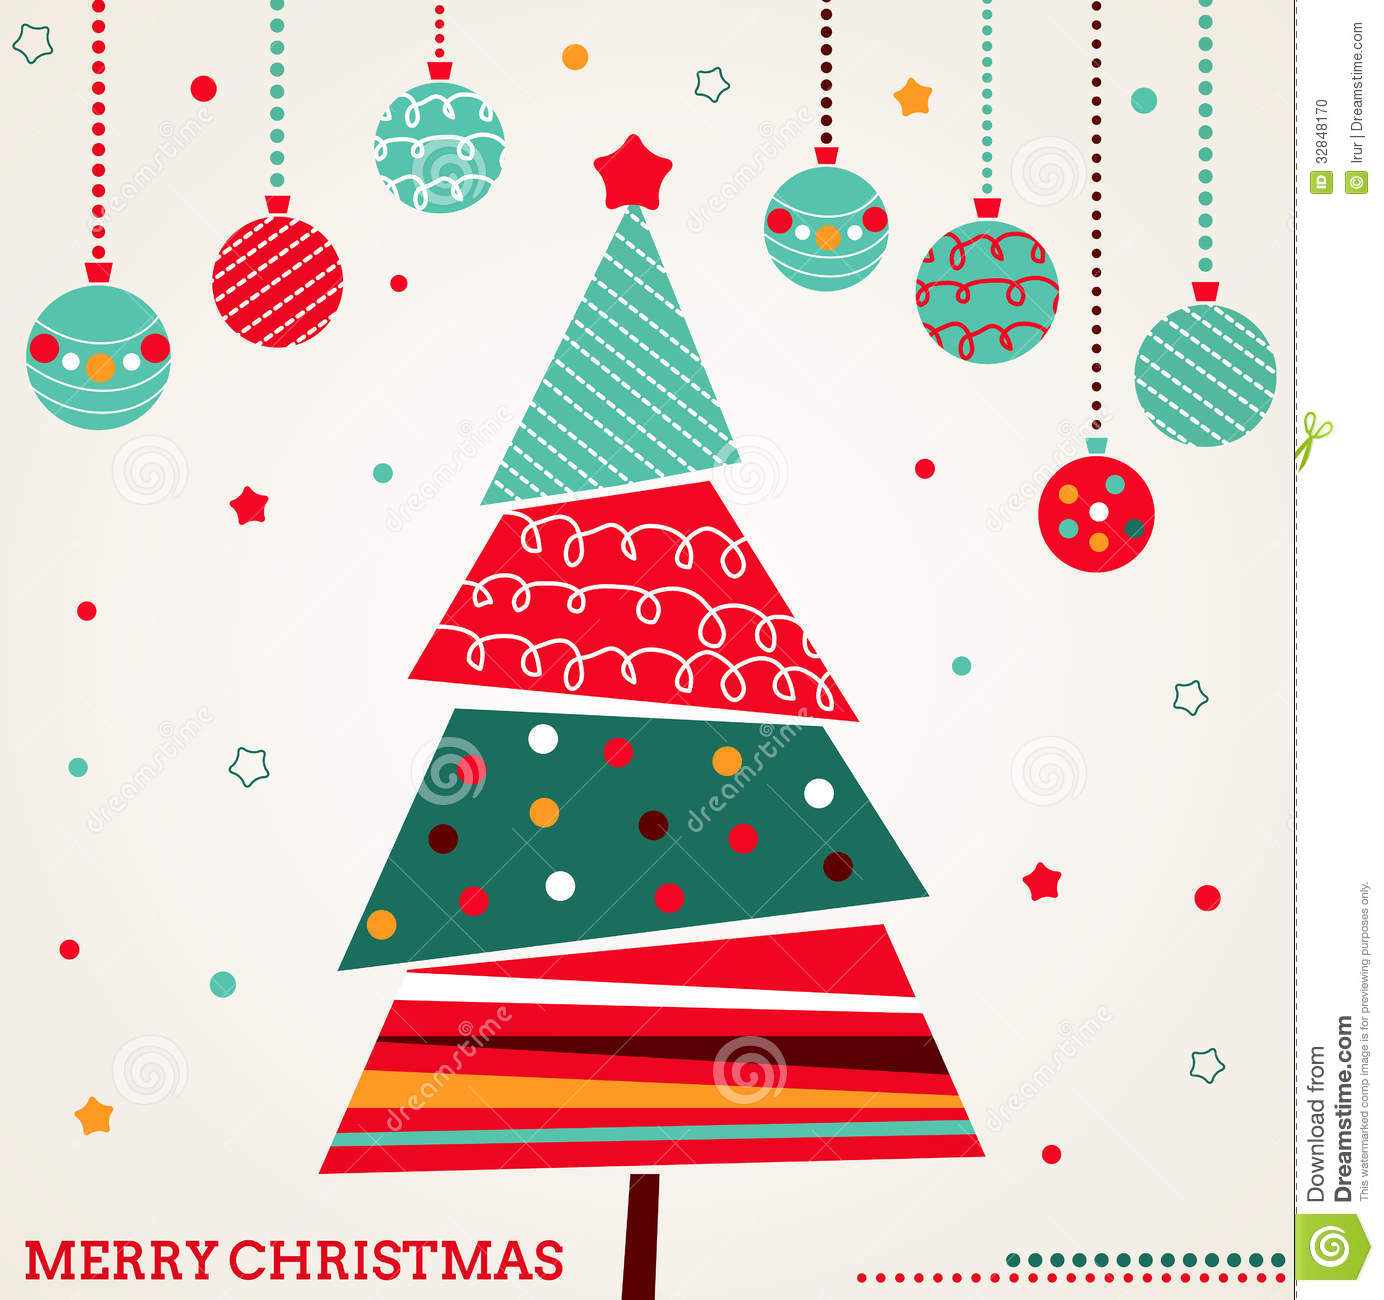 Retro Christmas Card With Tree And Ornaments Stock Vector ...